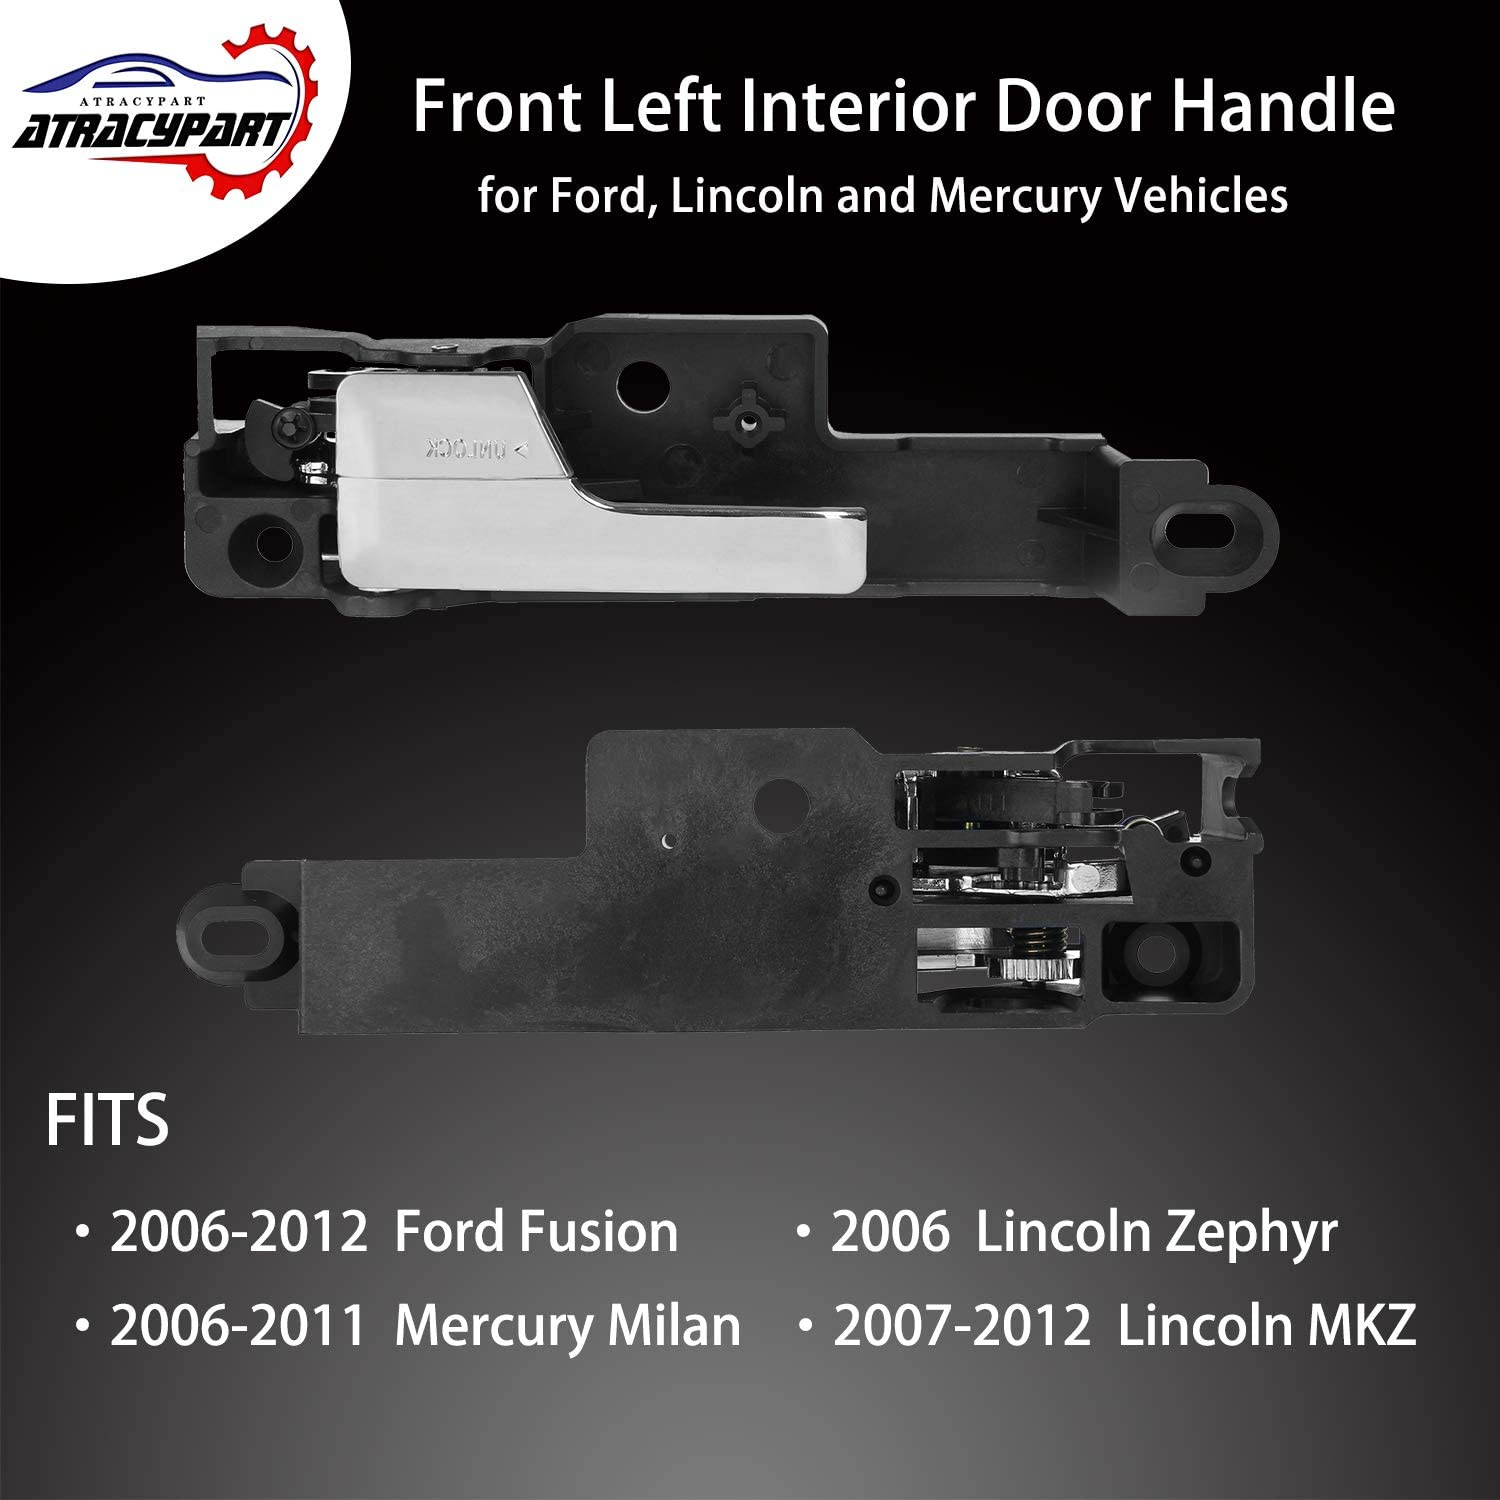 T1A-6E5Z-5422600-AA T1A 2006-2012 Ford Fusion Interior Door Handle Replacement Fits Front Right Passengers Side Metal Upgraded Also Fits Lincoln Zephyr and Mercury Milan